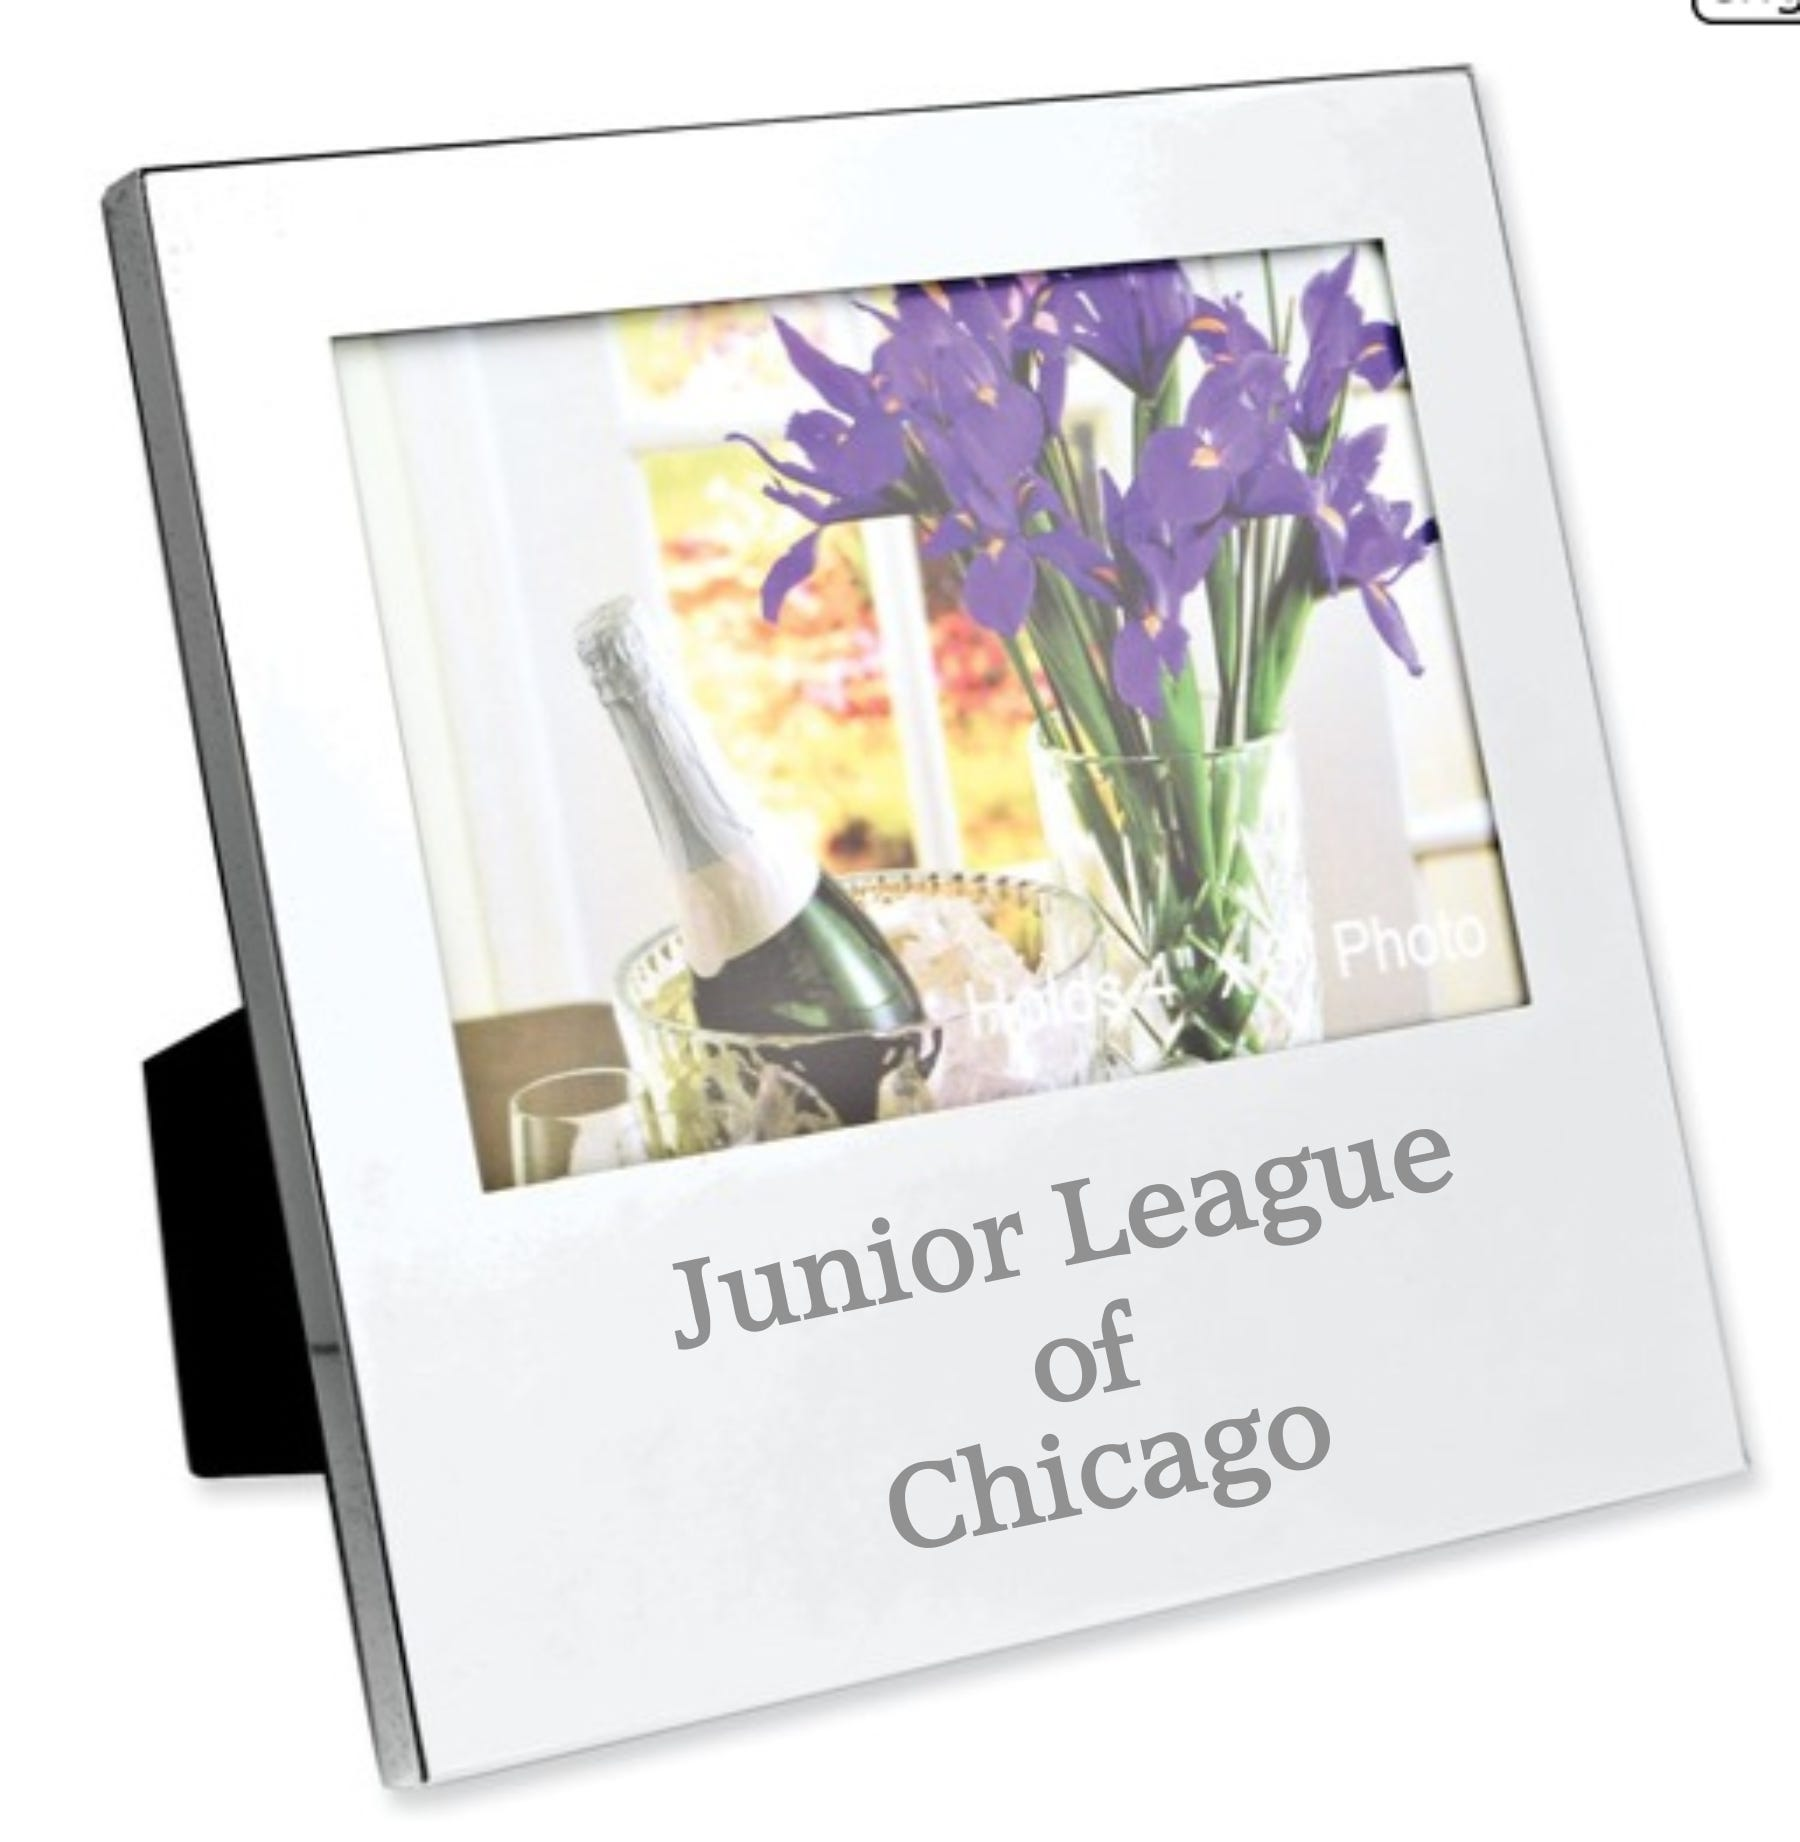 Junior League of Chicago Nickel-Plated Oversized 4x6 Photo Frame